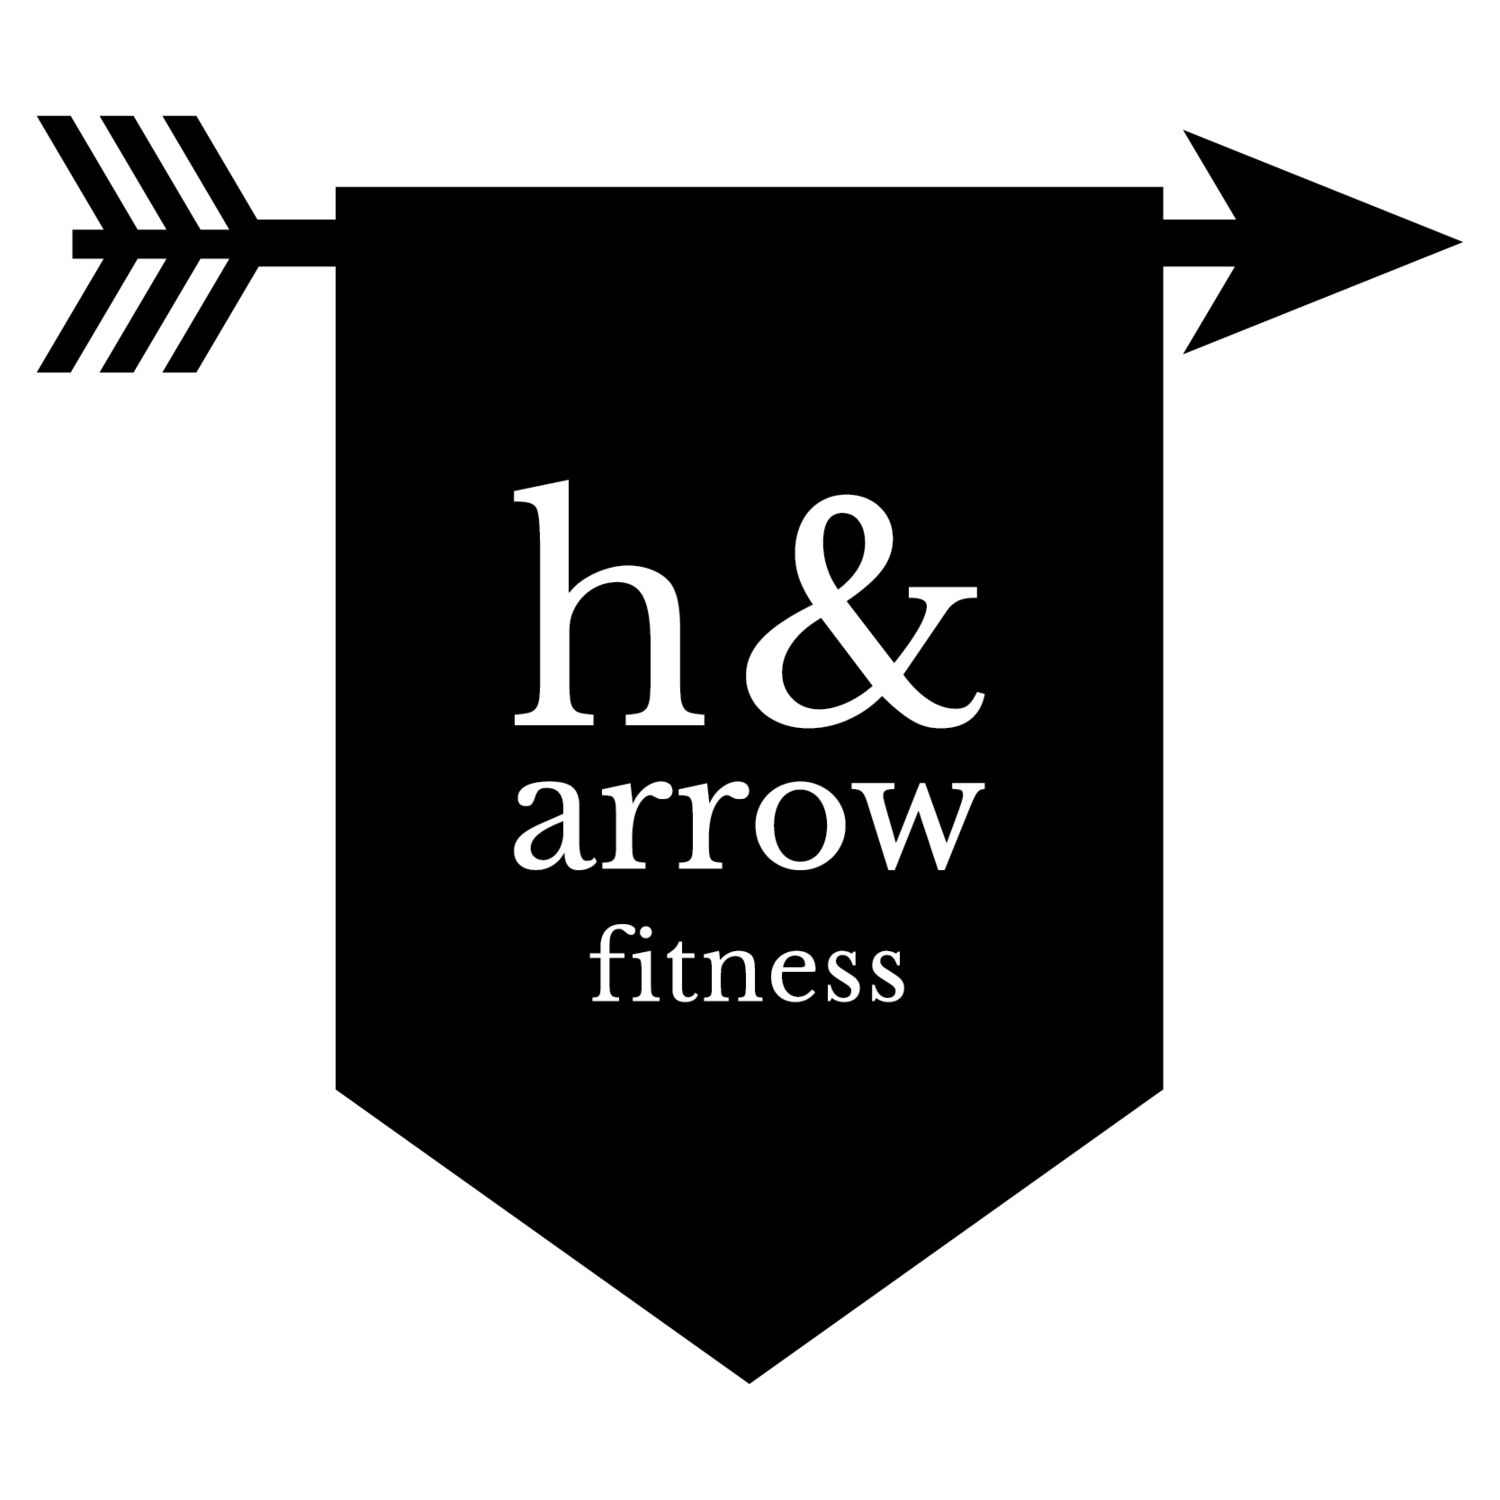 Picture of an arrow banner freeuse download NC Fitness Classes and Personal Fitness Support - H & Arrow Fitness banner freeuse download